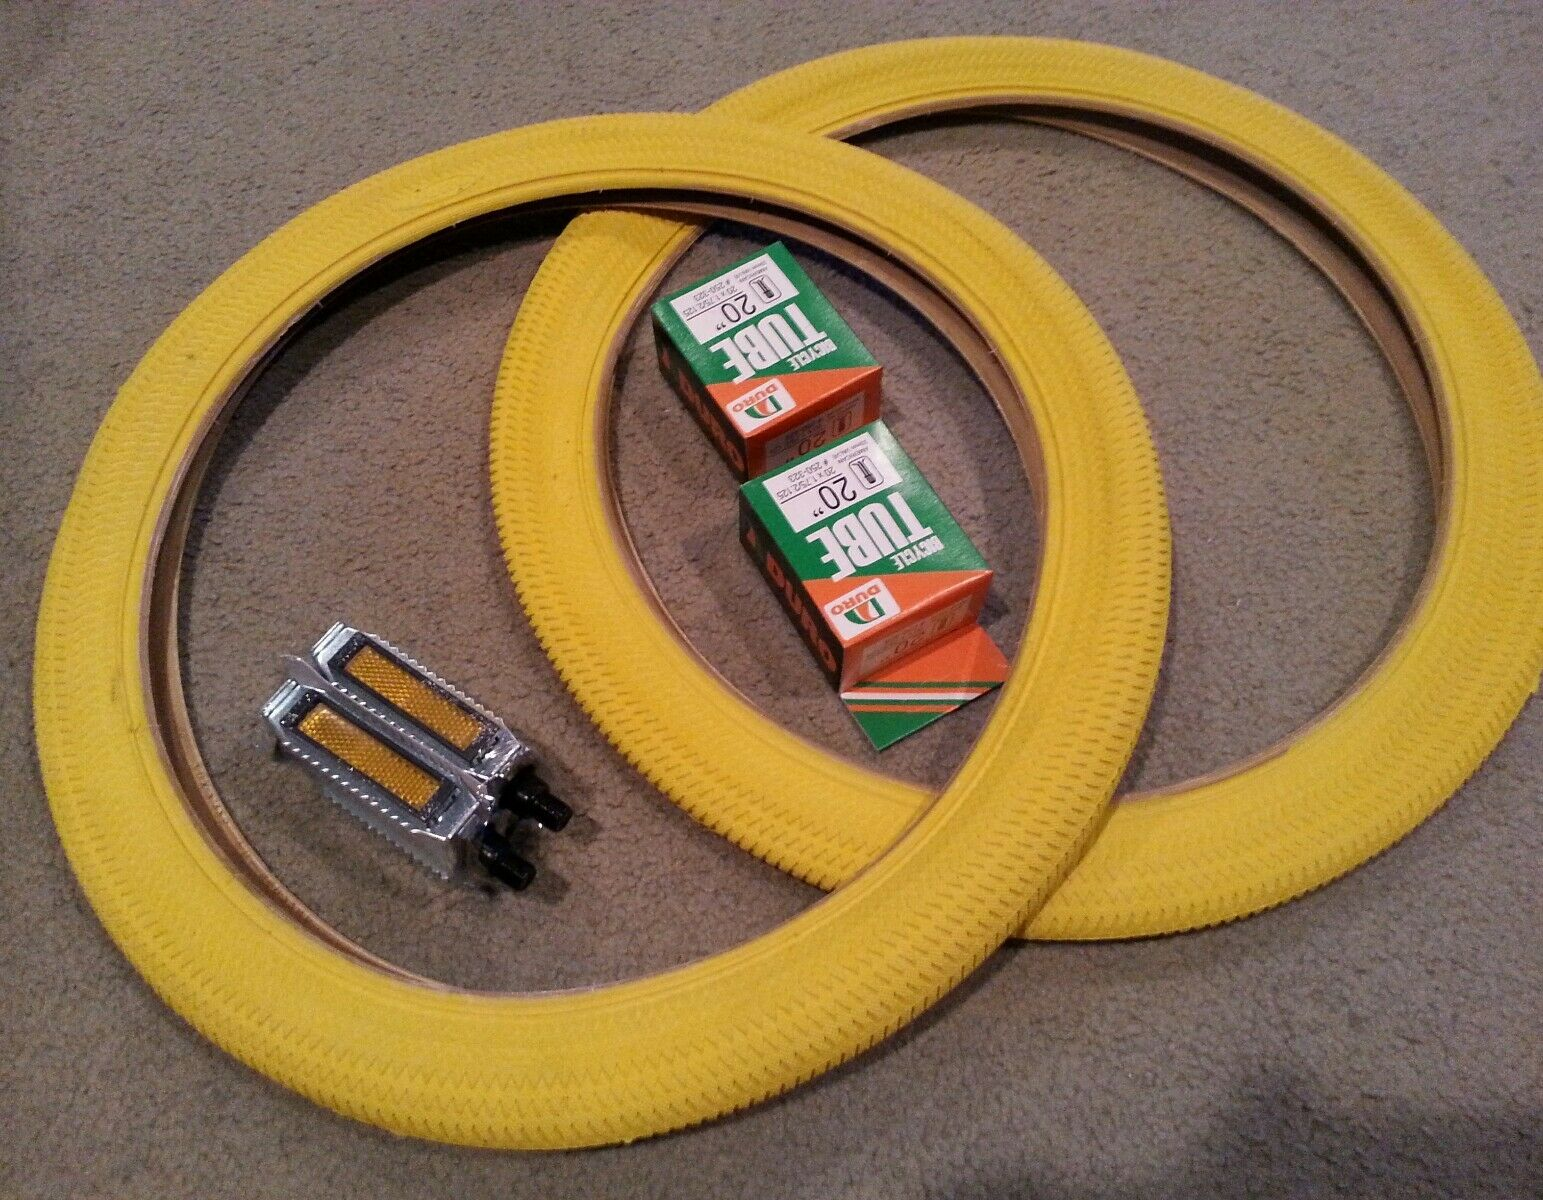 2 DURO BMX BICYCLE TIRES 20X1.95 (47-406) YELLOW &TUBES ,2 RAT TRAP PEDALS 1 2